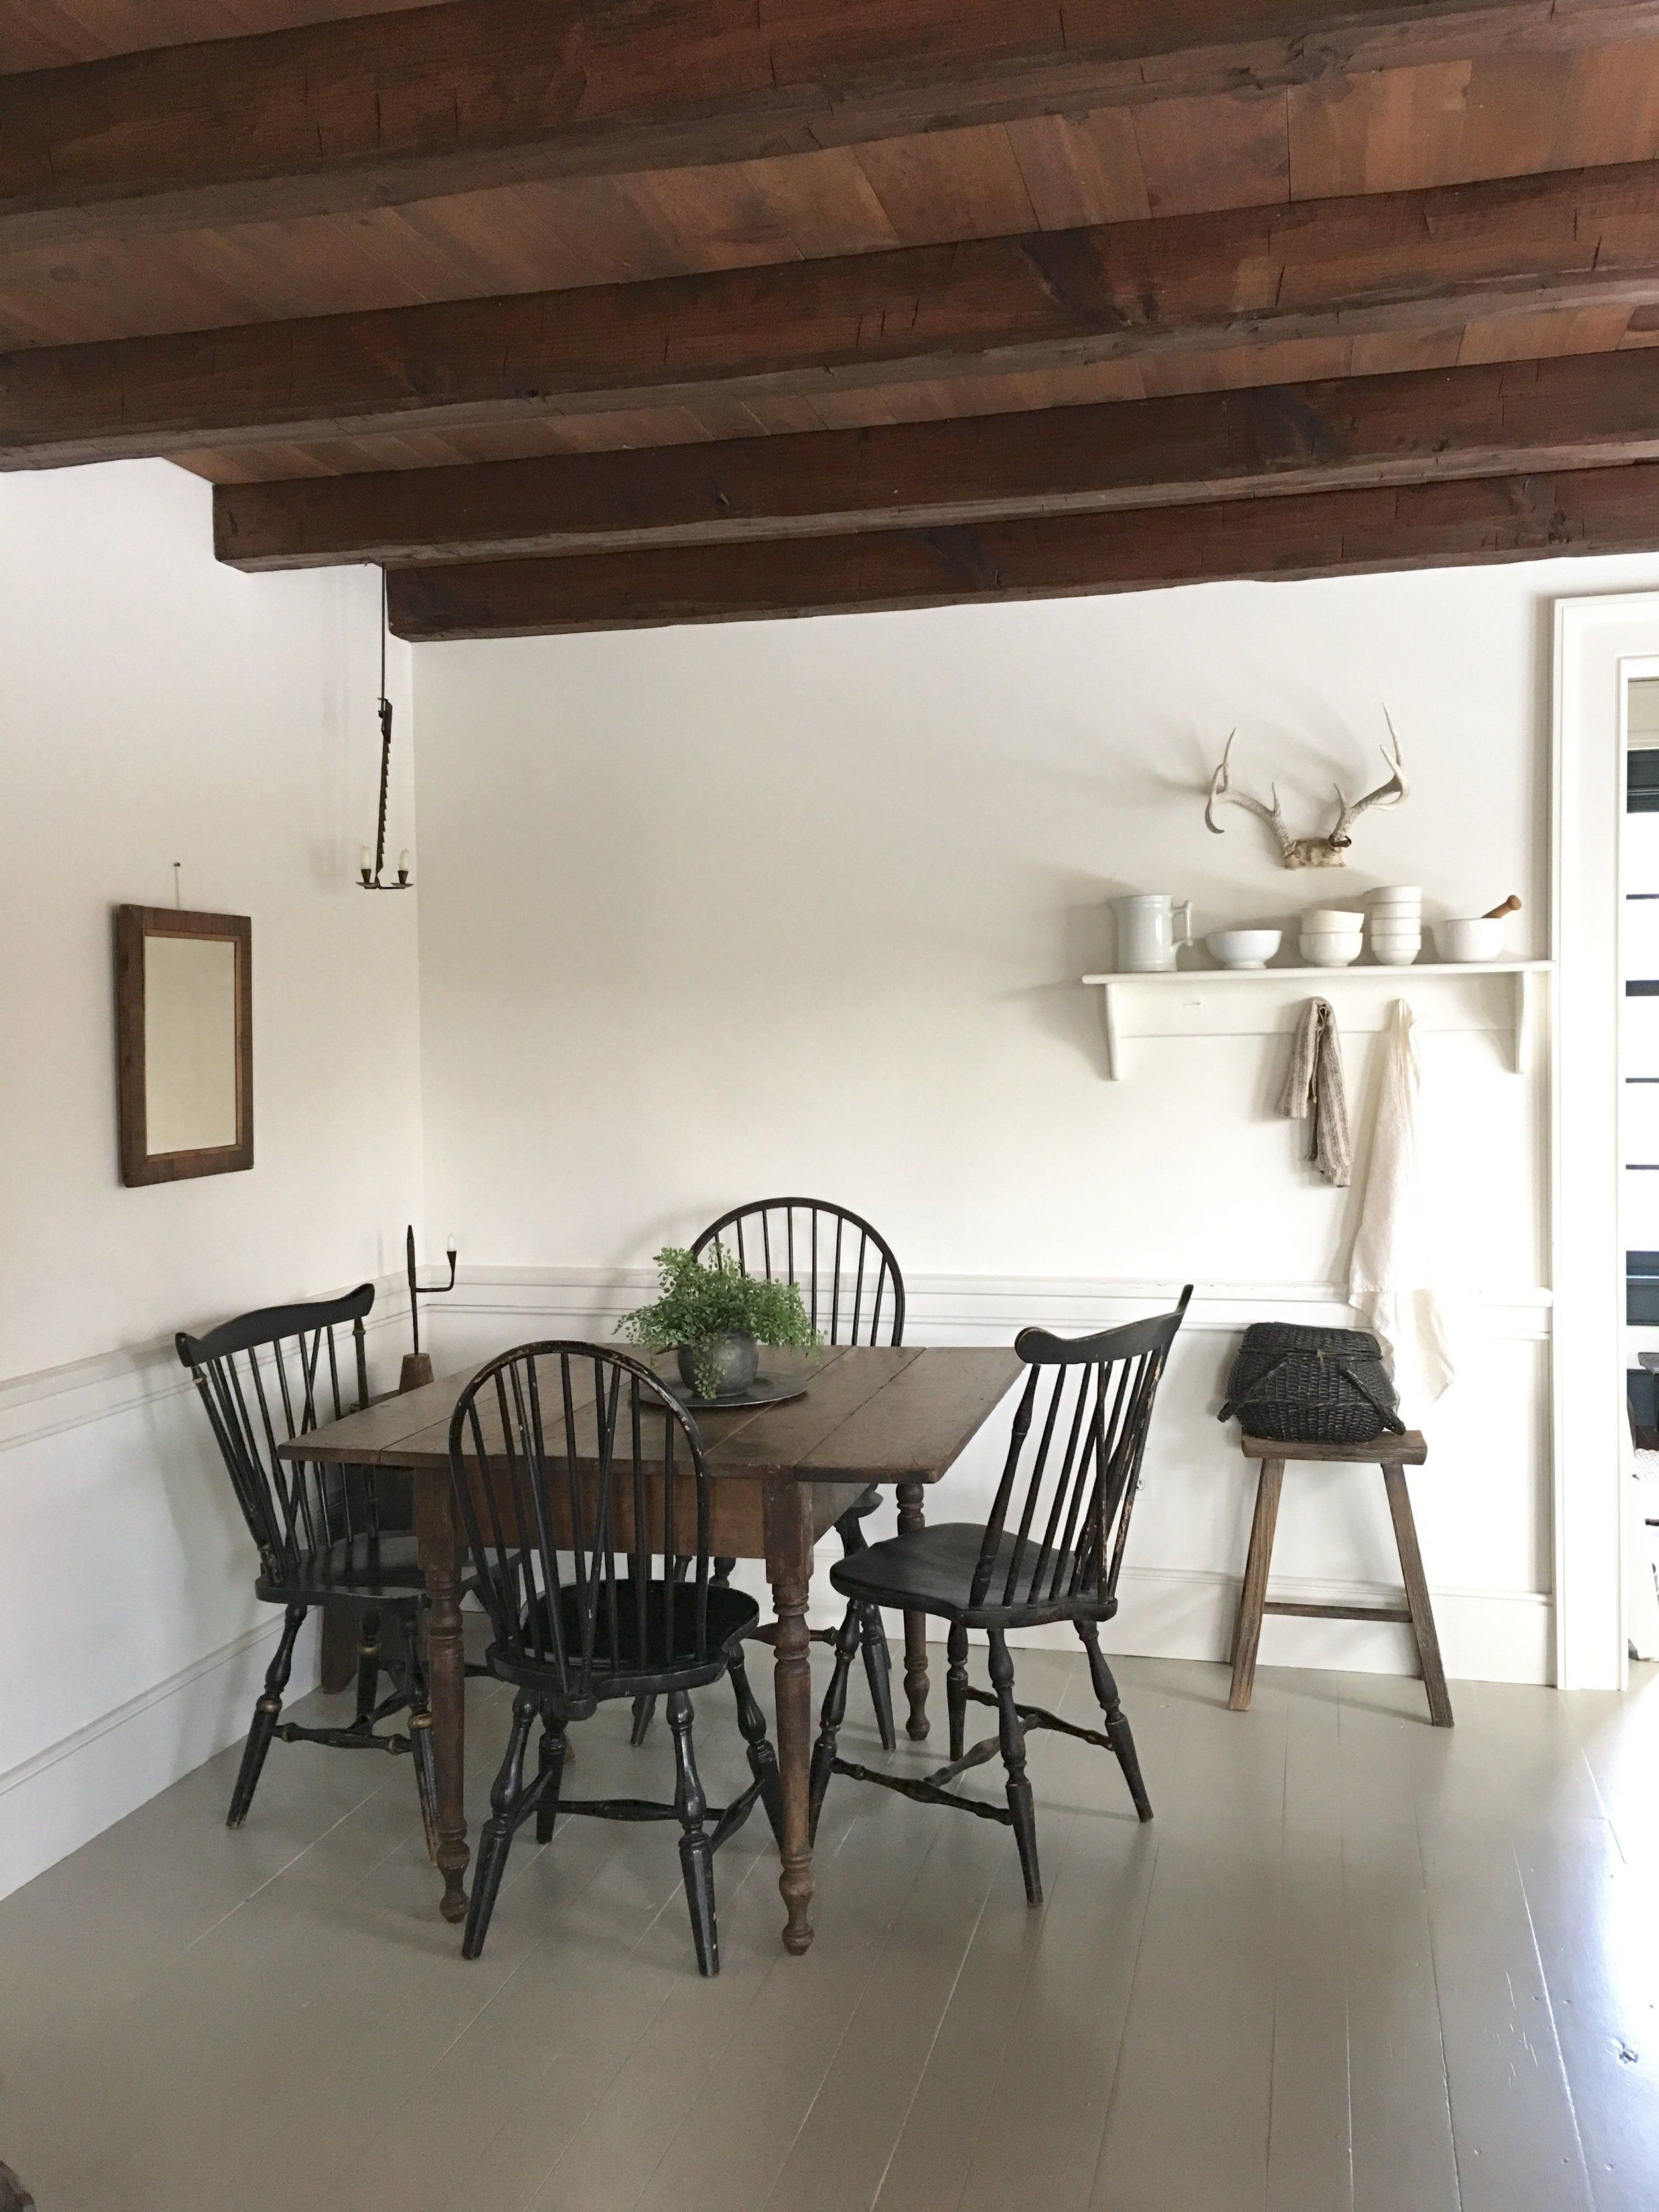 Decorating With Antlers | Cabin Kitchen | Decor, Contemporary Rustic Inside Current Lillard 3 Piece Breakfast Nook Dining Sets (View 16 of 20)